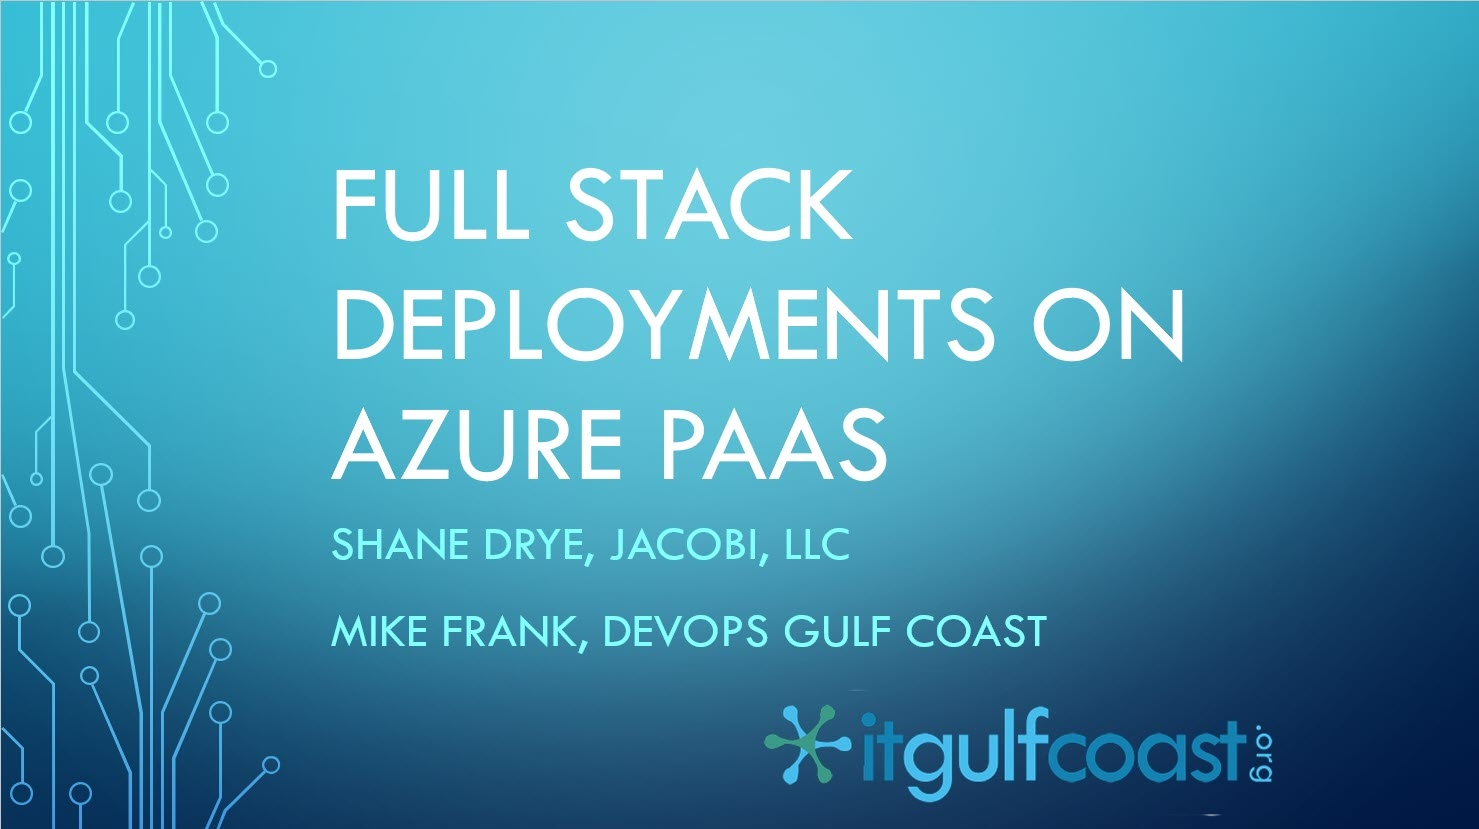 Full Stack Deployments on Azure PaaS